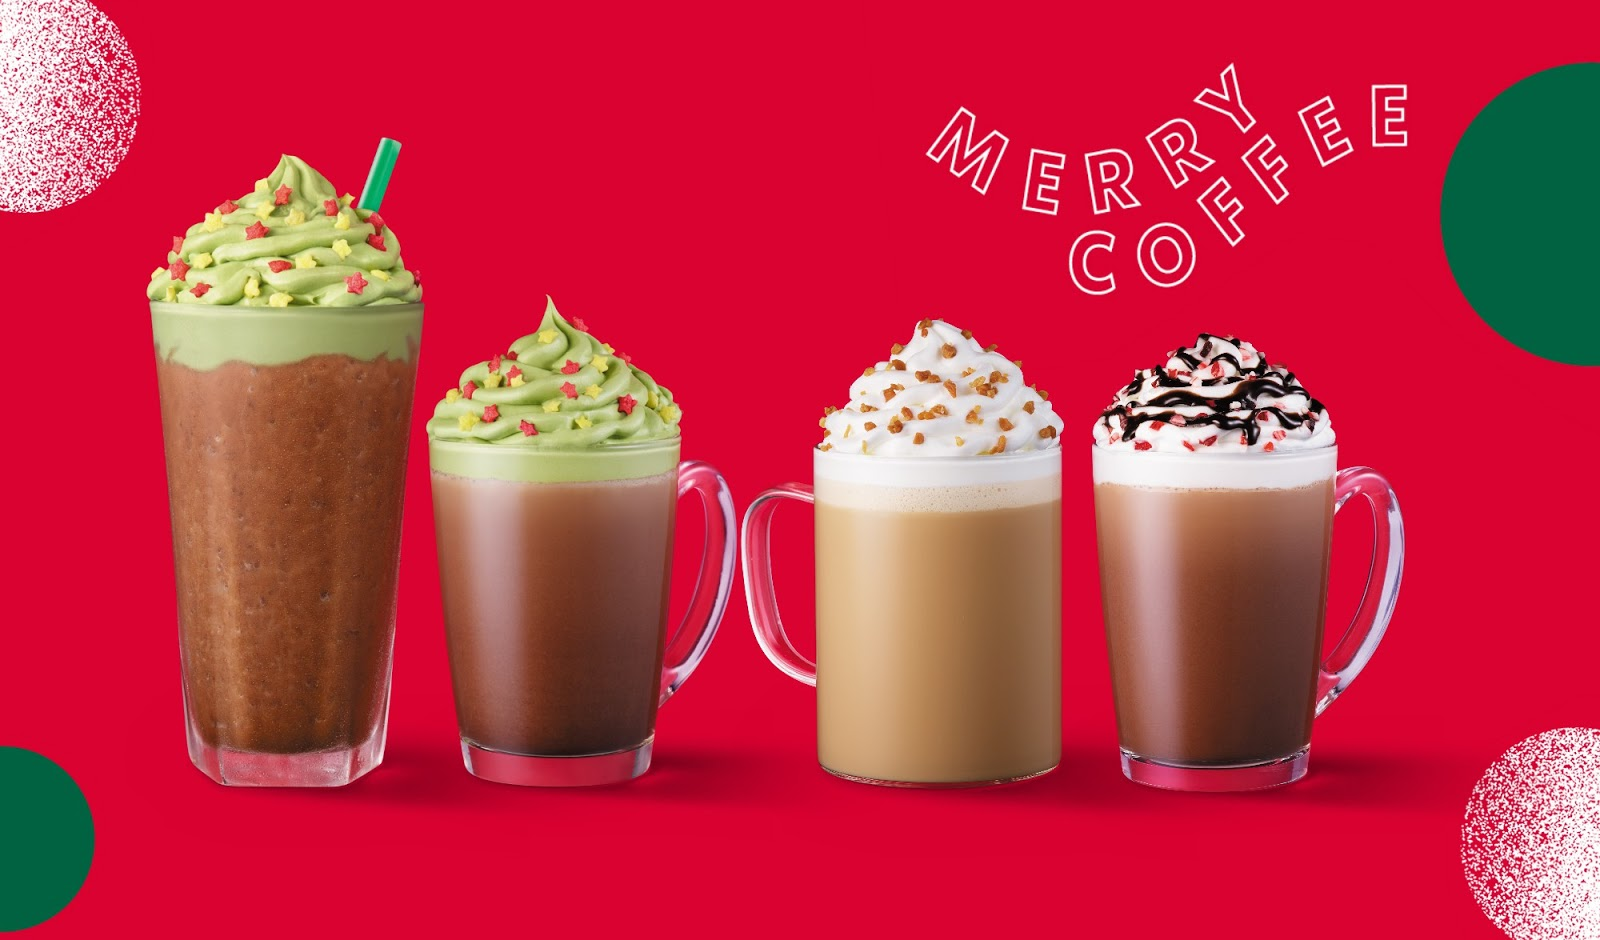 Starbucks 2019 Holiday Offerings